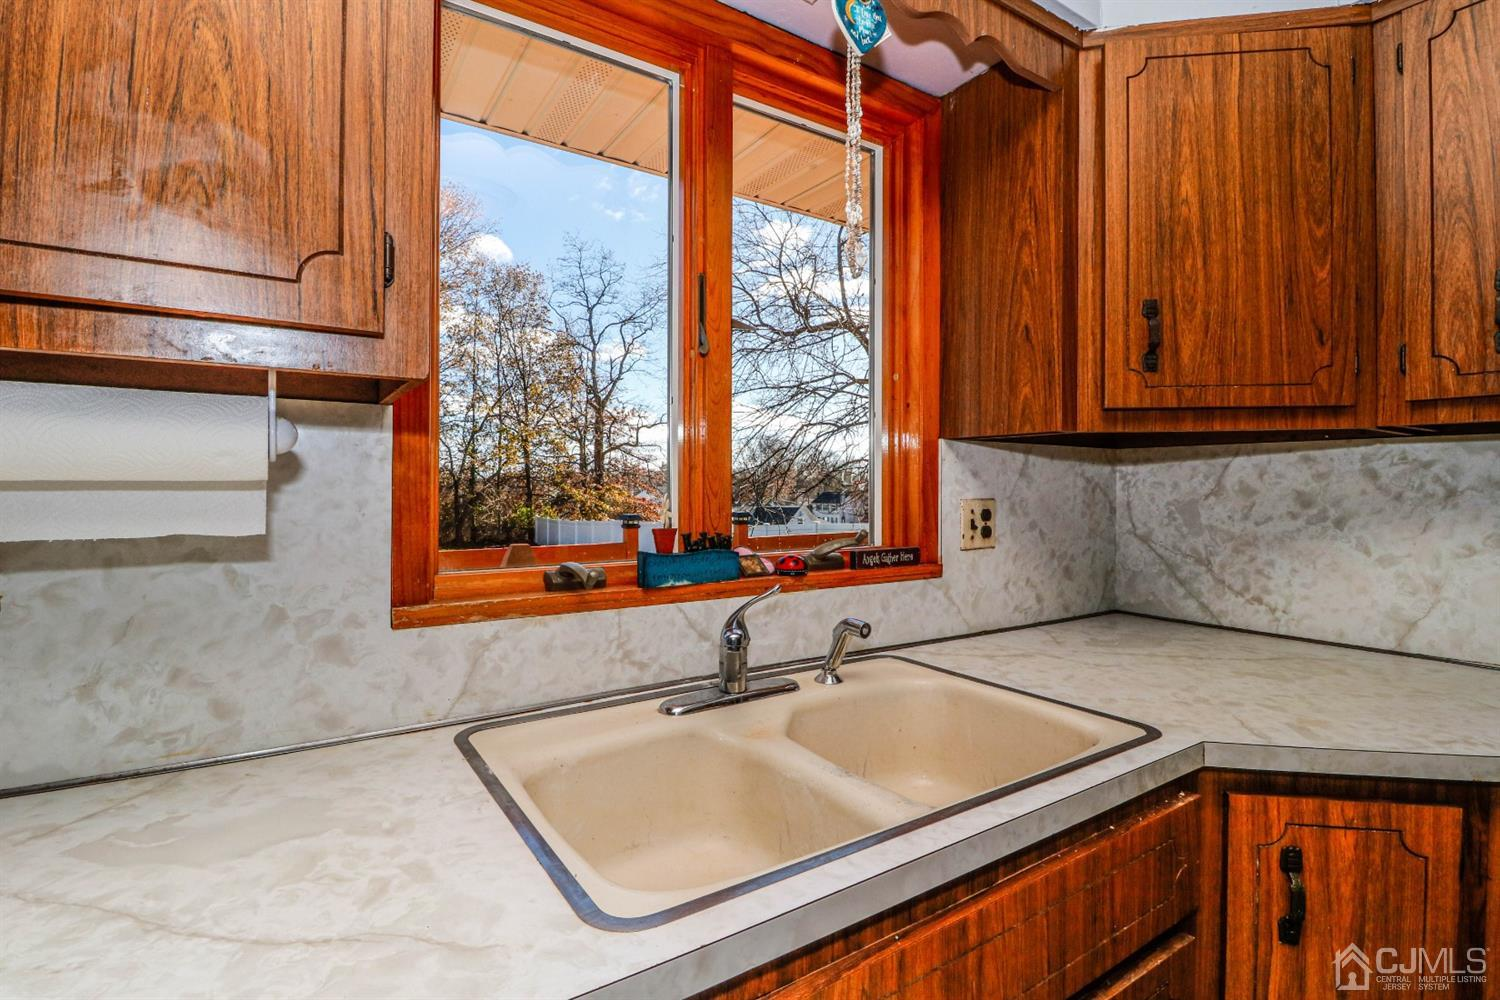 Enjoy the 4 season gorgeous views of the park like yard through these upgraded windows above the double porcelain sink.